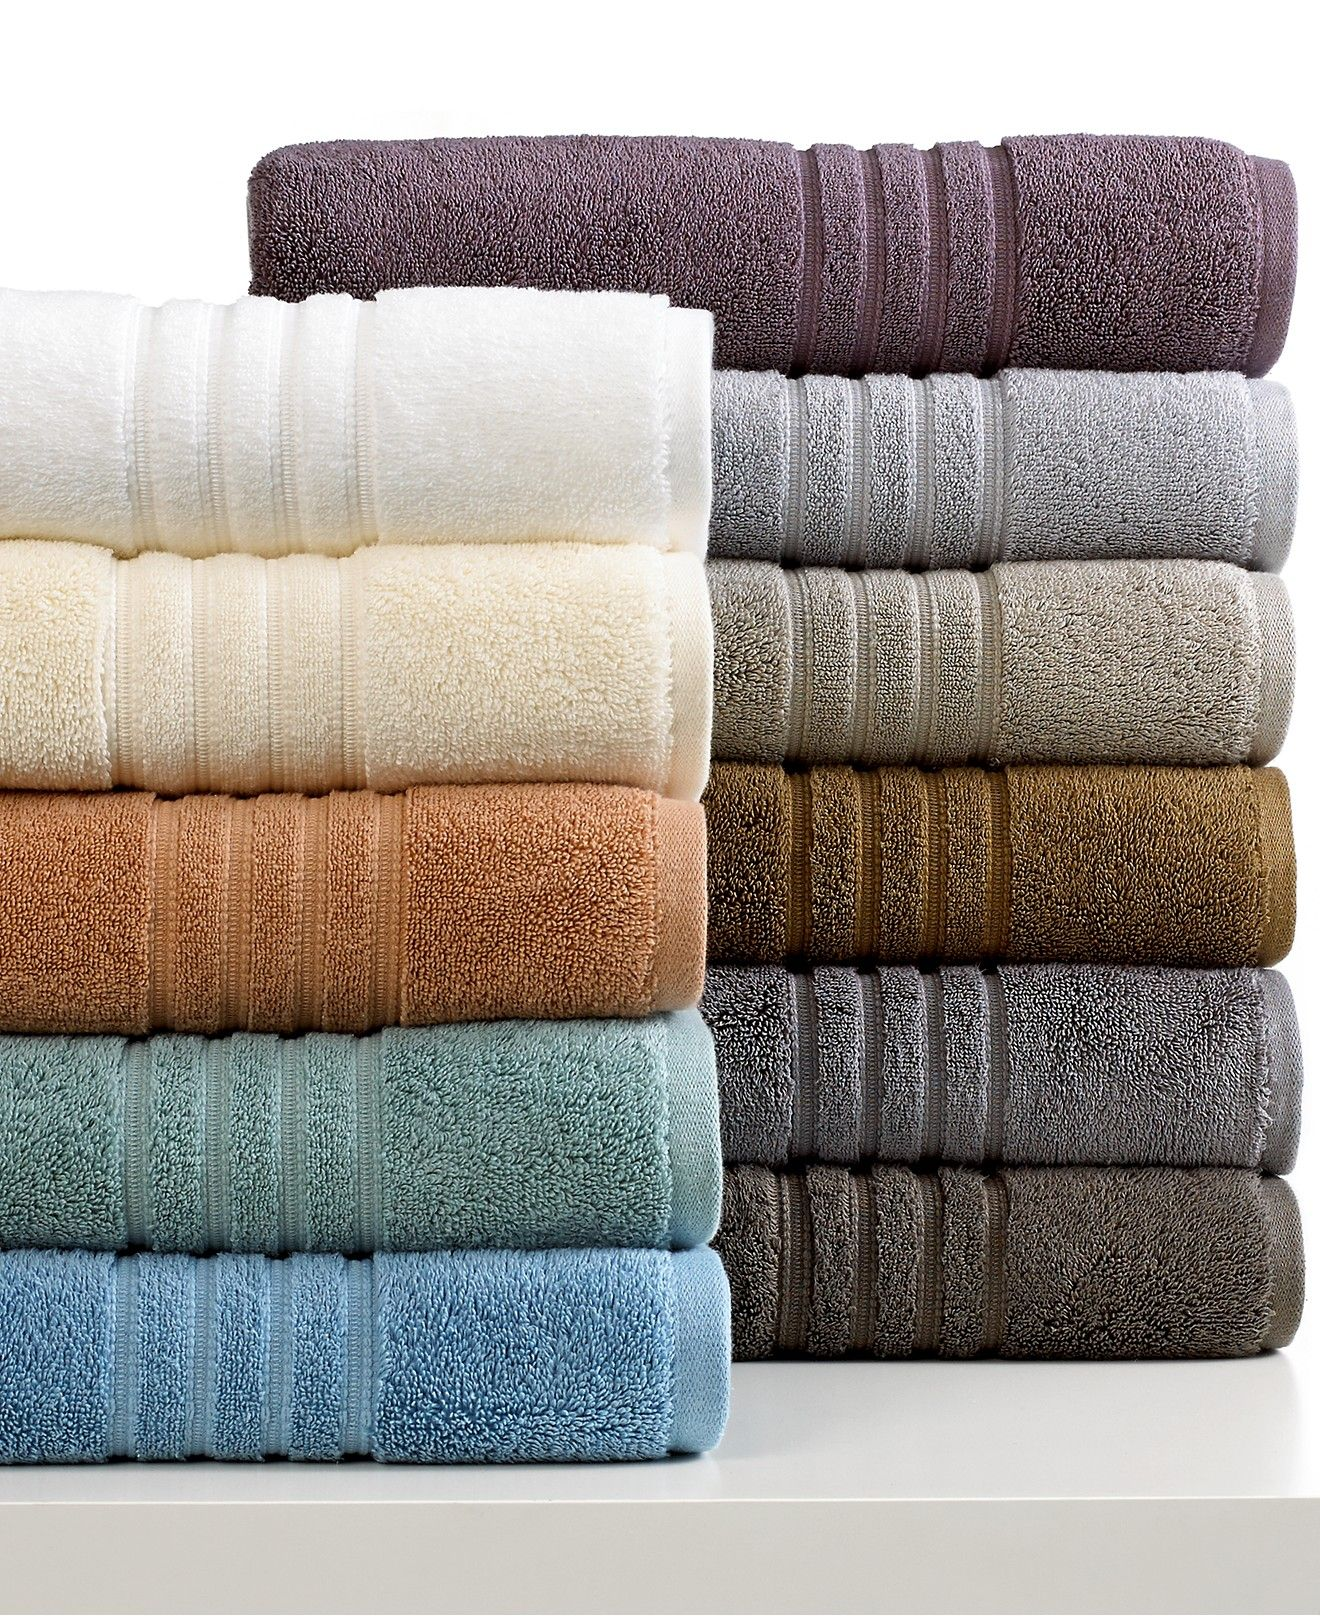 Charisma Bath Towels Unique Hotel Collection Microcotton® Luxe Bath Towel Collection  2 White Inspiration